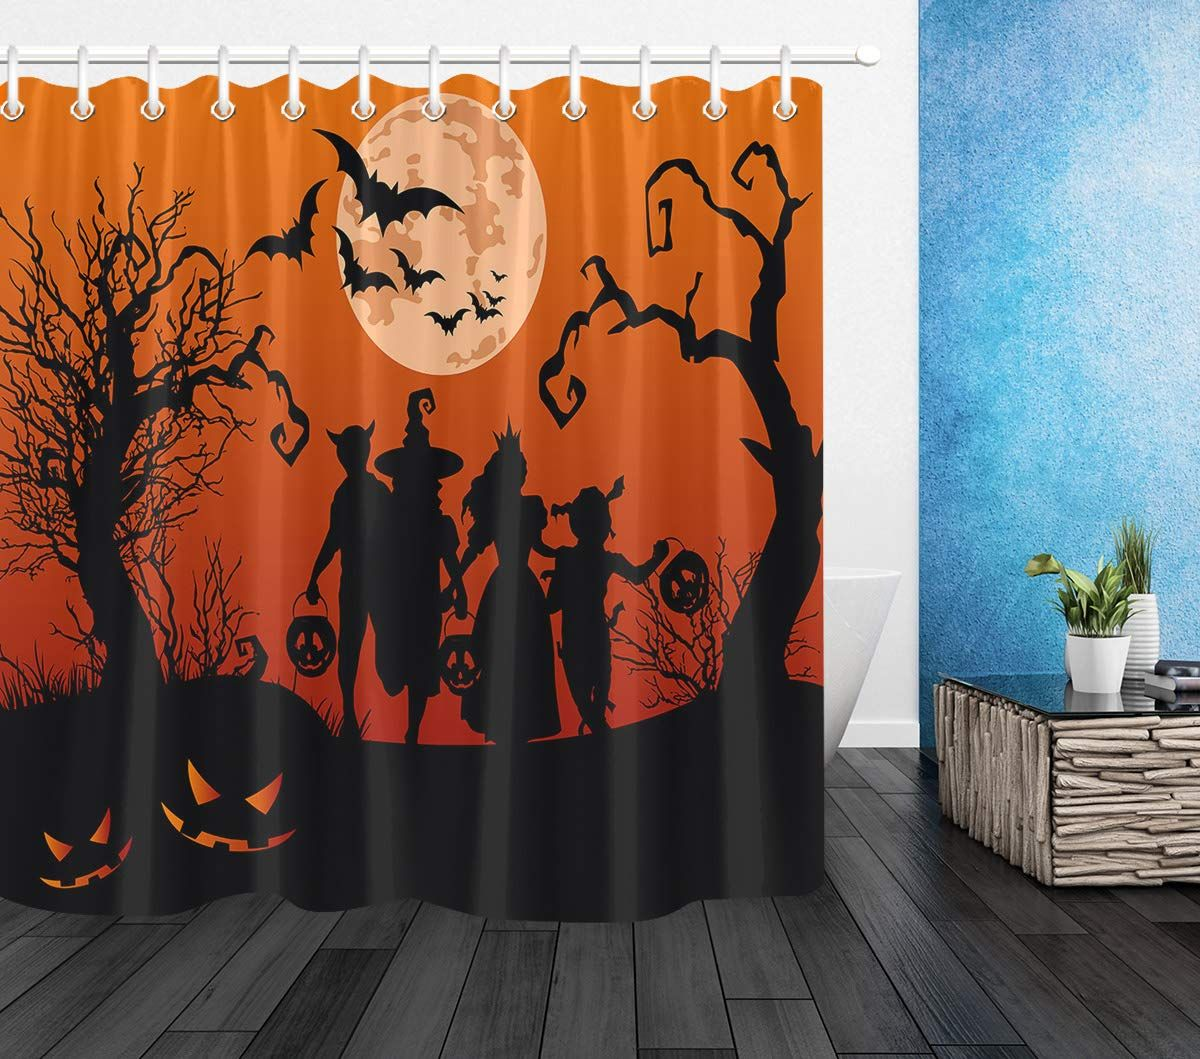 Halloweenshowercurtain LB Black Orange Scary Forest In Moon Night Shower Curtains For Bathroom Halloween Themed